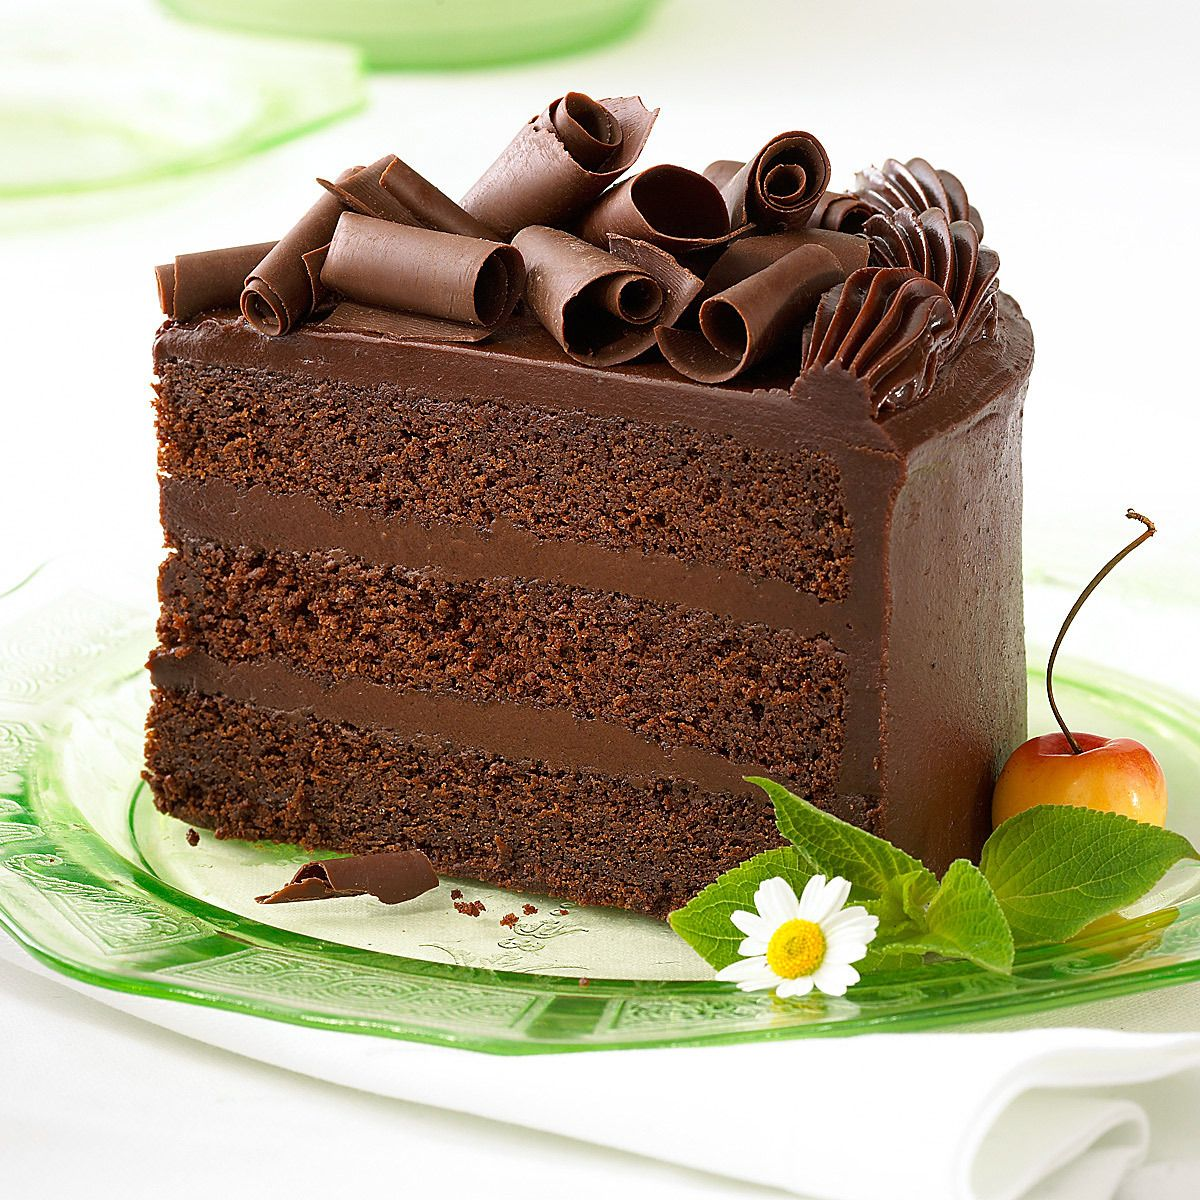 1chocolate_cake_sharpen